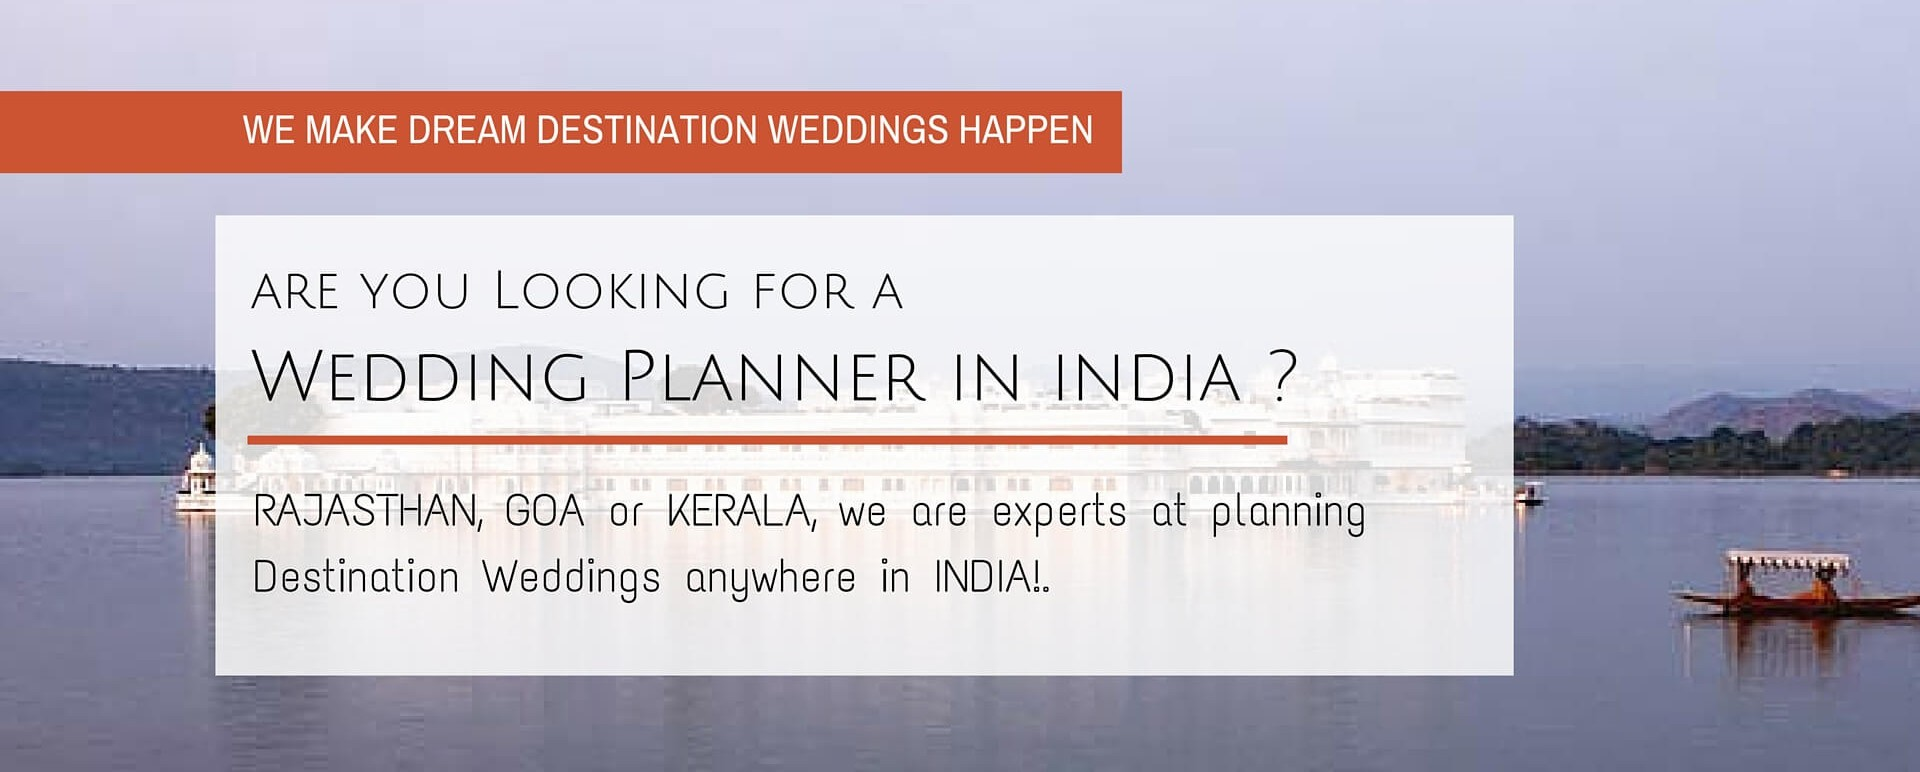 We make dream destination weddings happen in India